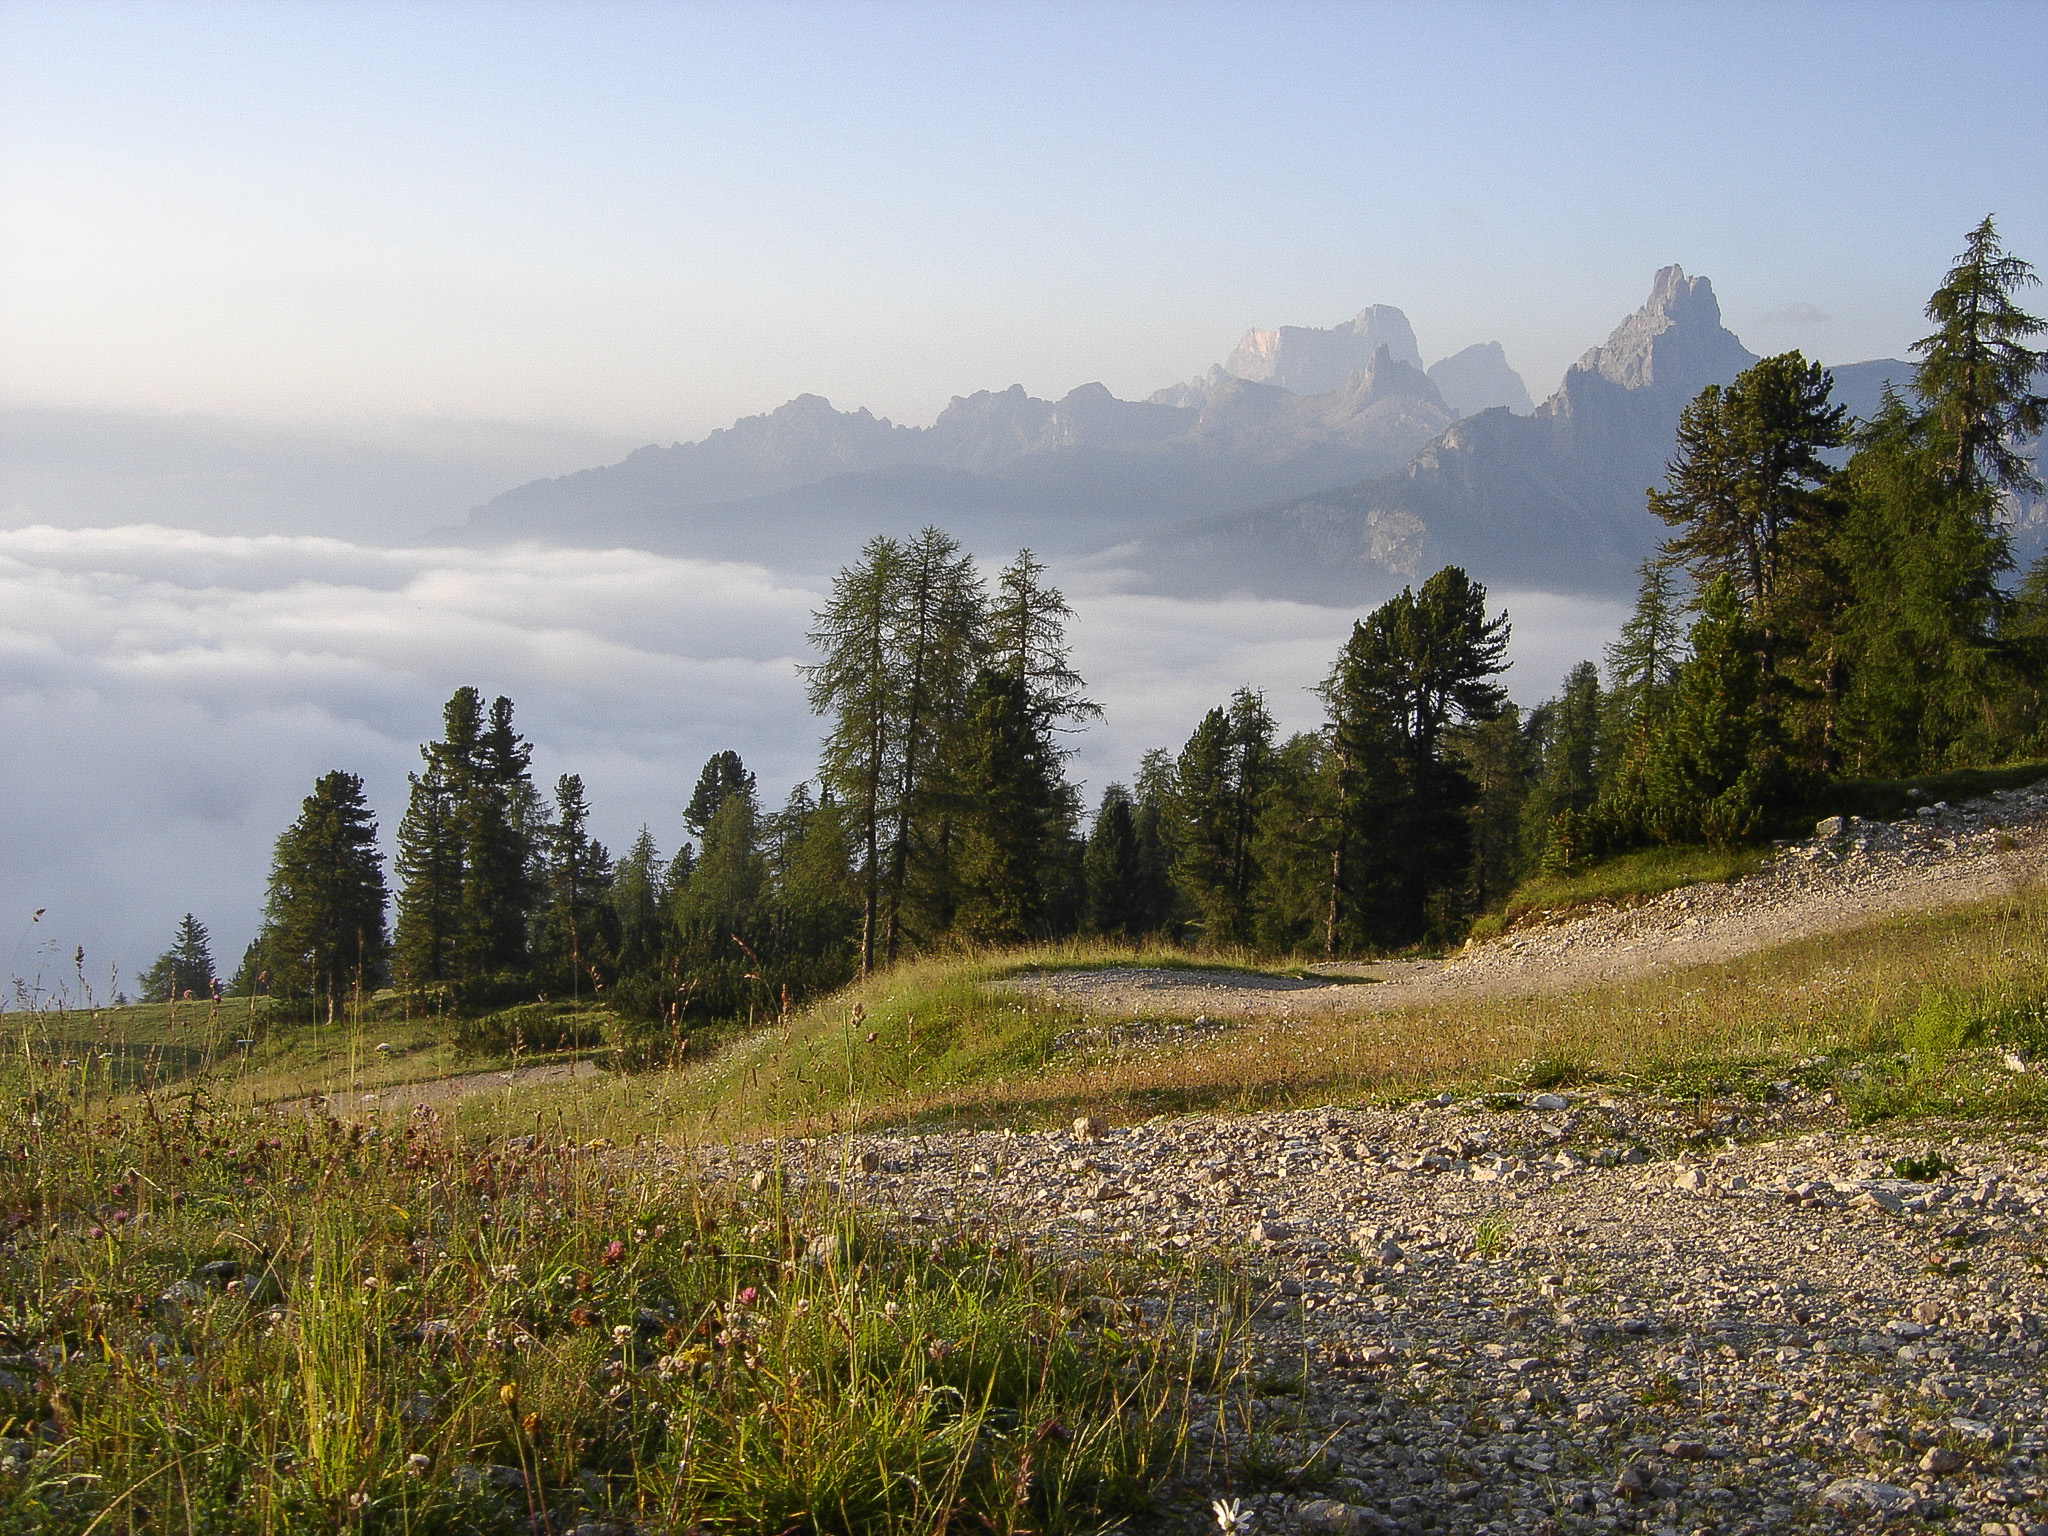 Going up to the ref Duca D'Aosta...